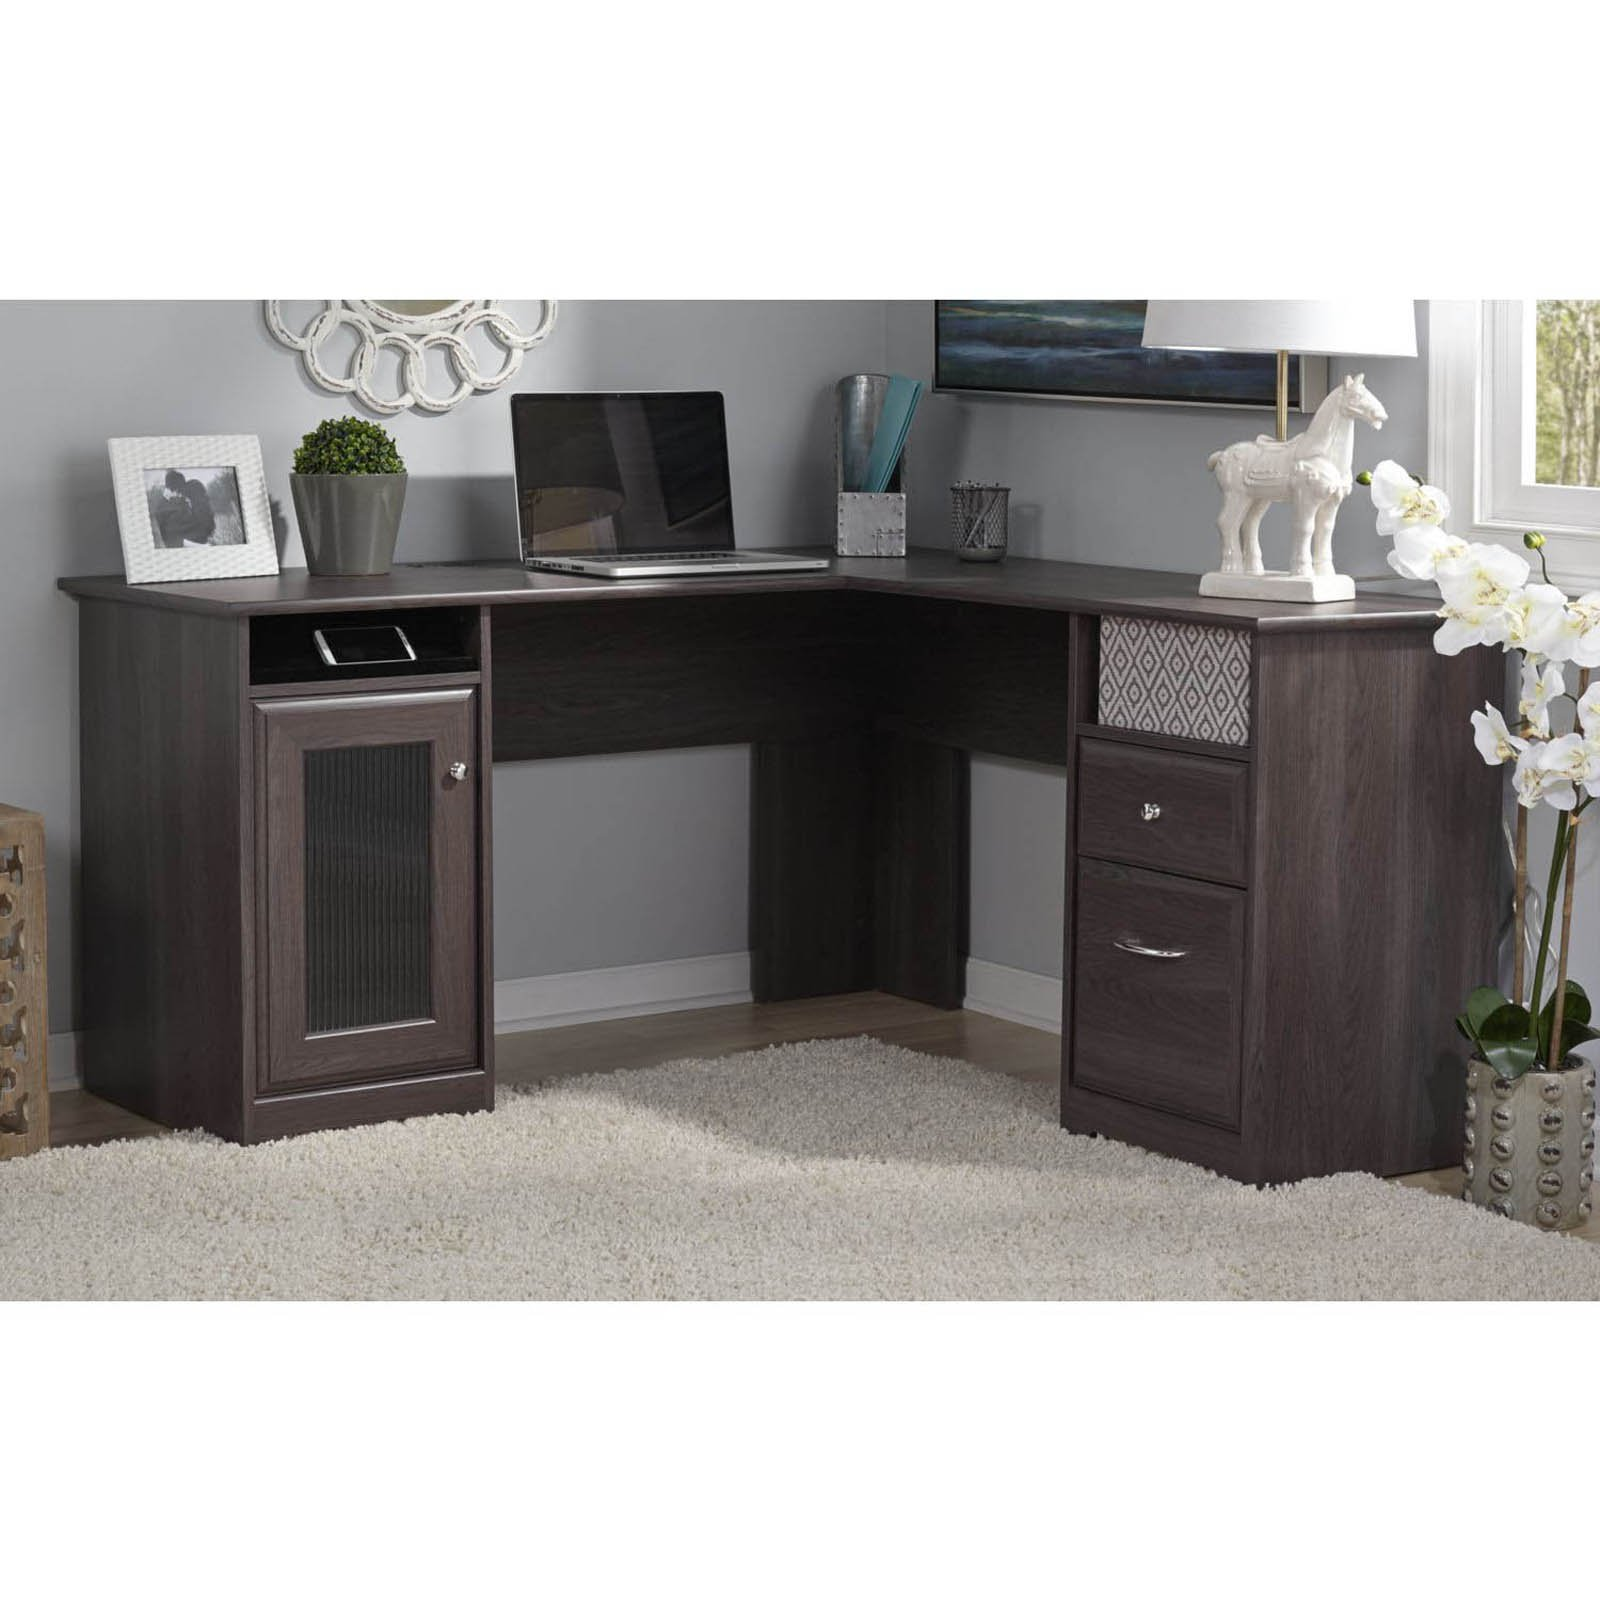 new product 196e7 7a971 Bush Cabot L-Shaped Desk with Optional Hutch - Walmart.com